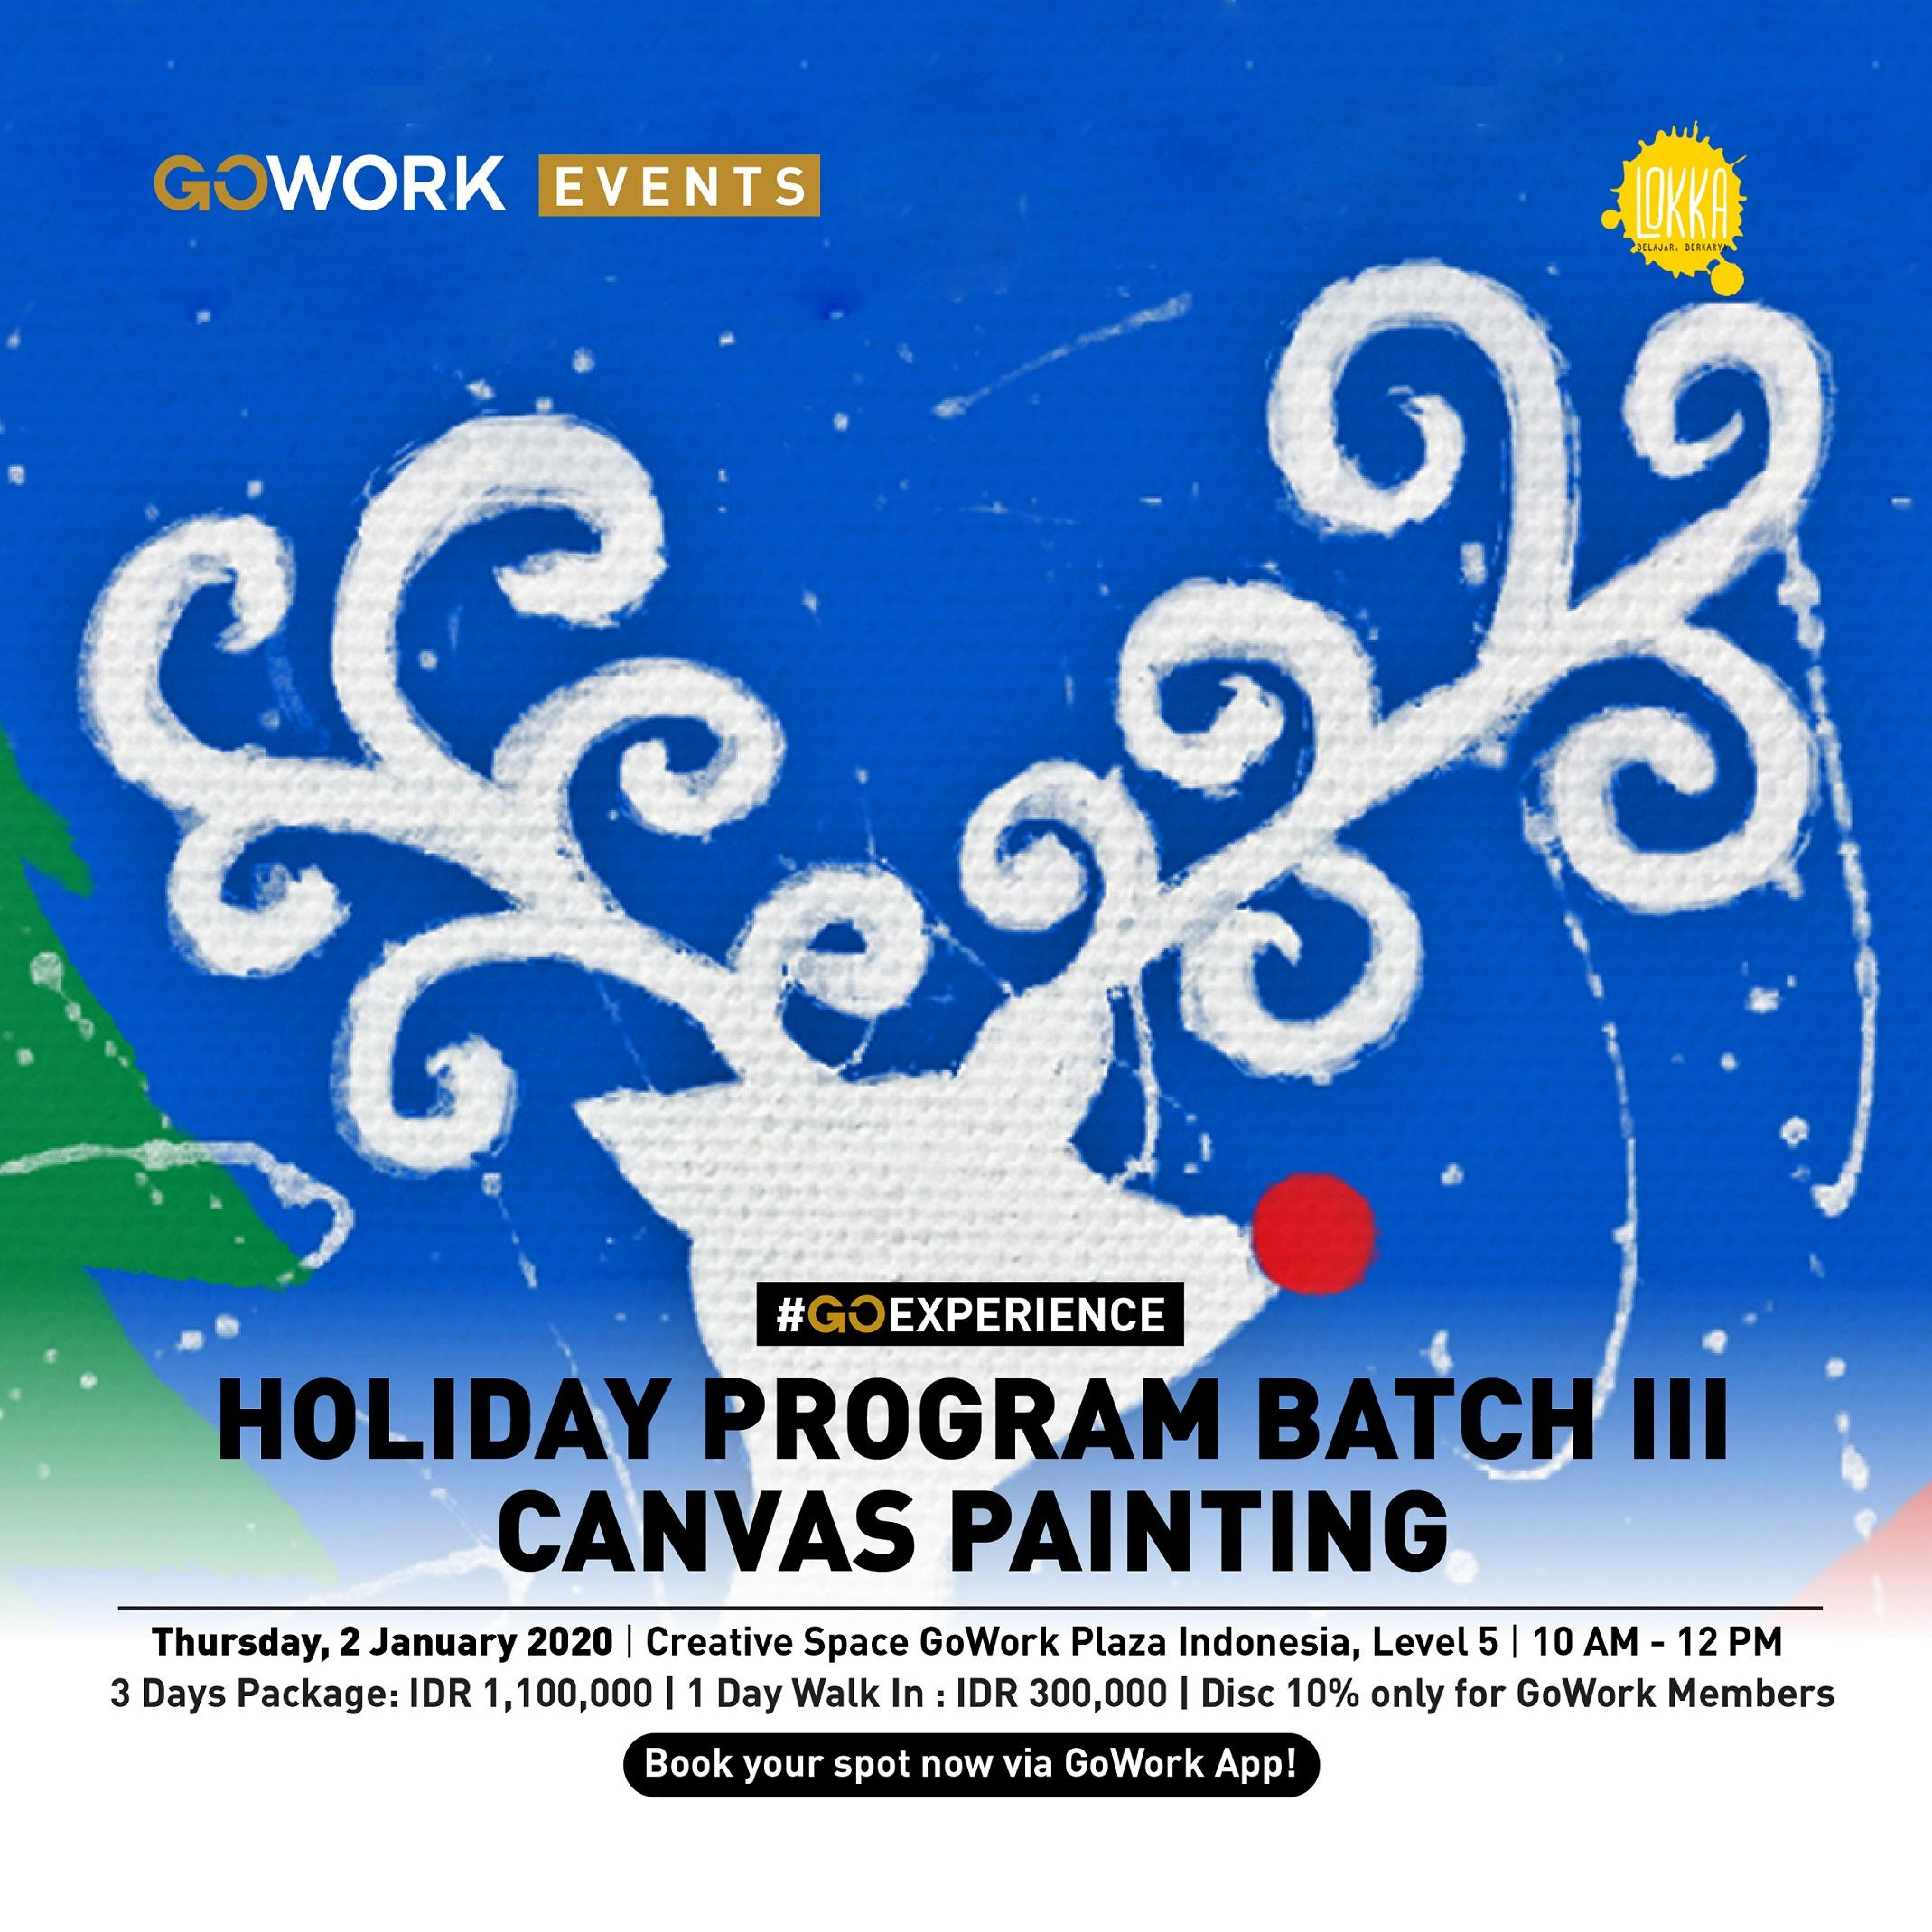 Lokka Holiday Program Batch III : Canvas Painting